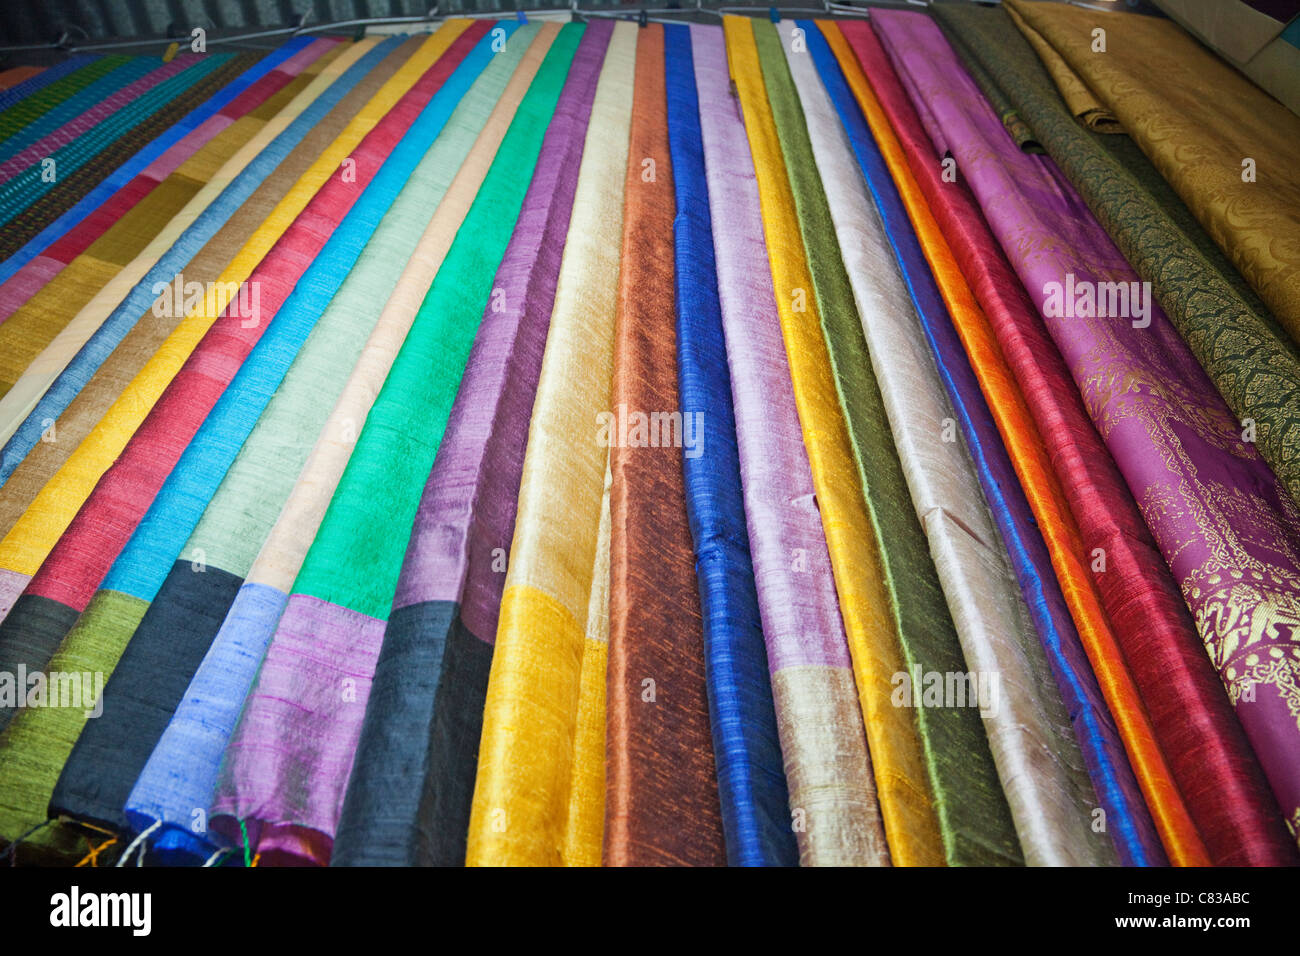 Cambodia, Phnom Penh, Russian Market, Material and Silk Shop, Detail of Silk Fabrics Stock Photo